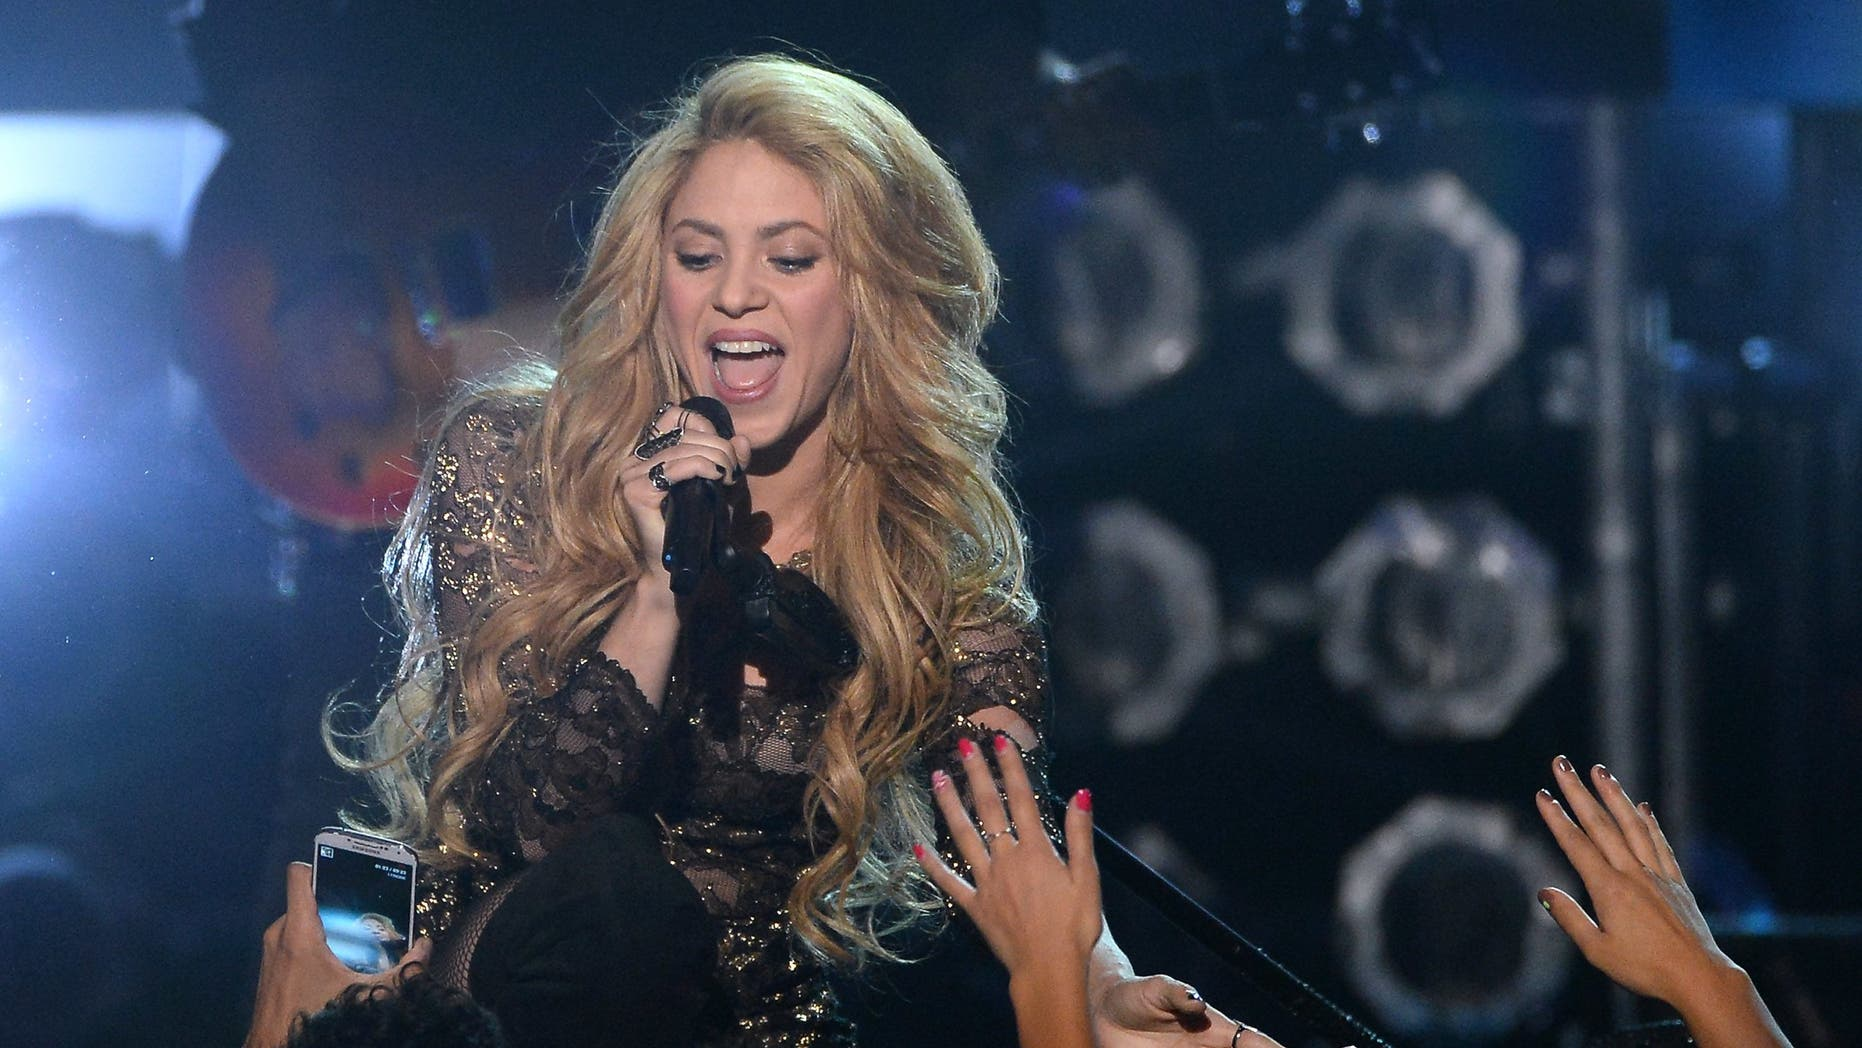 Singer Shakira accused of tax fraud